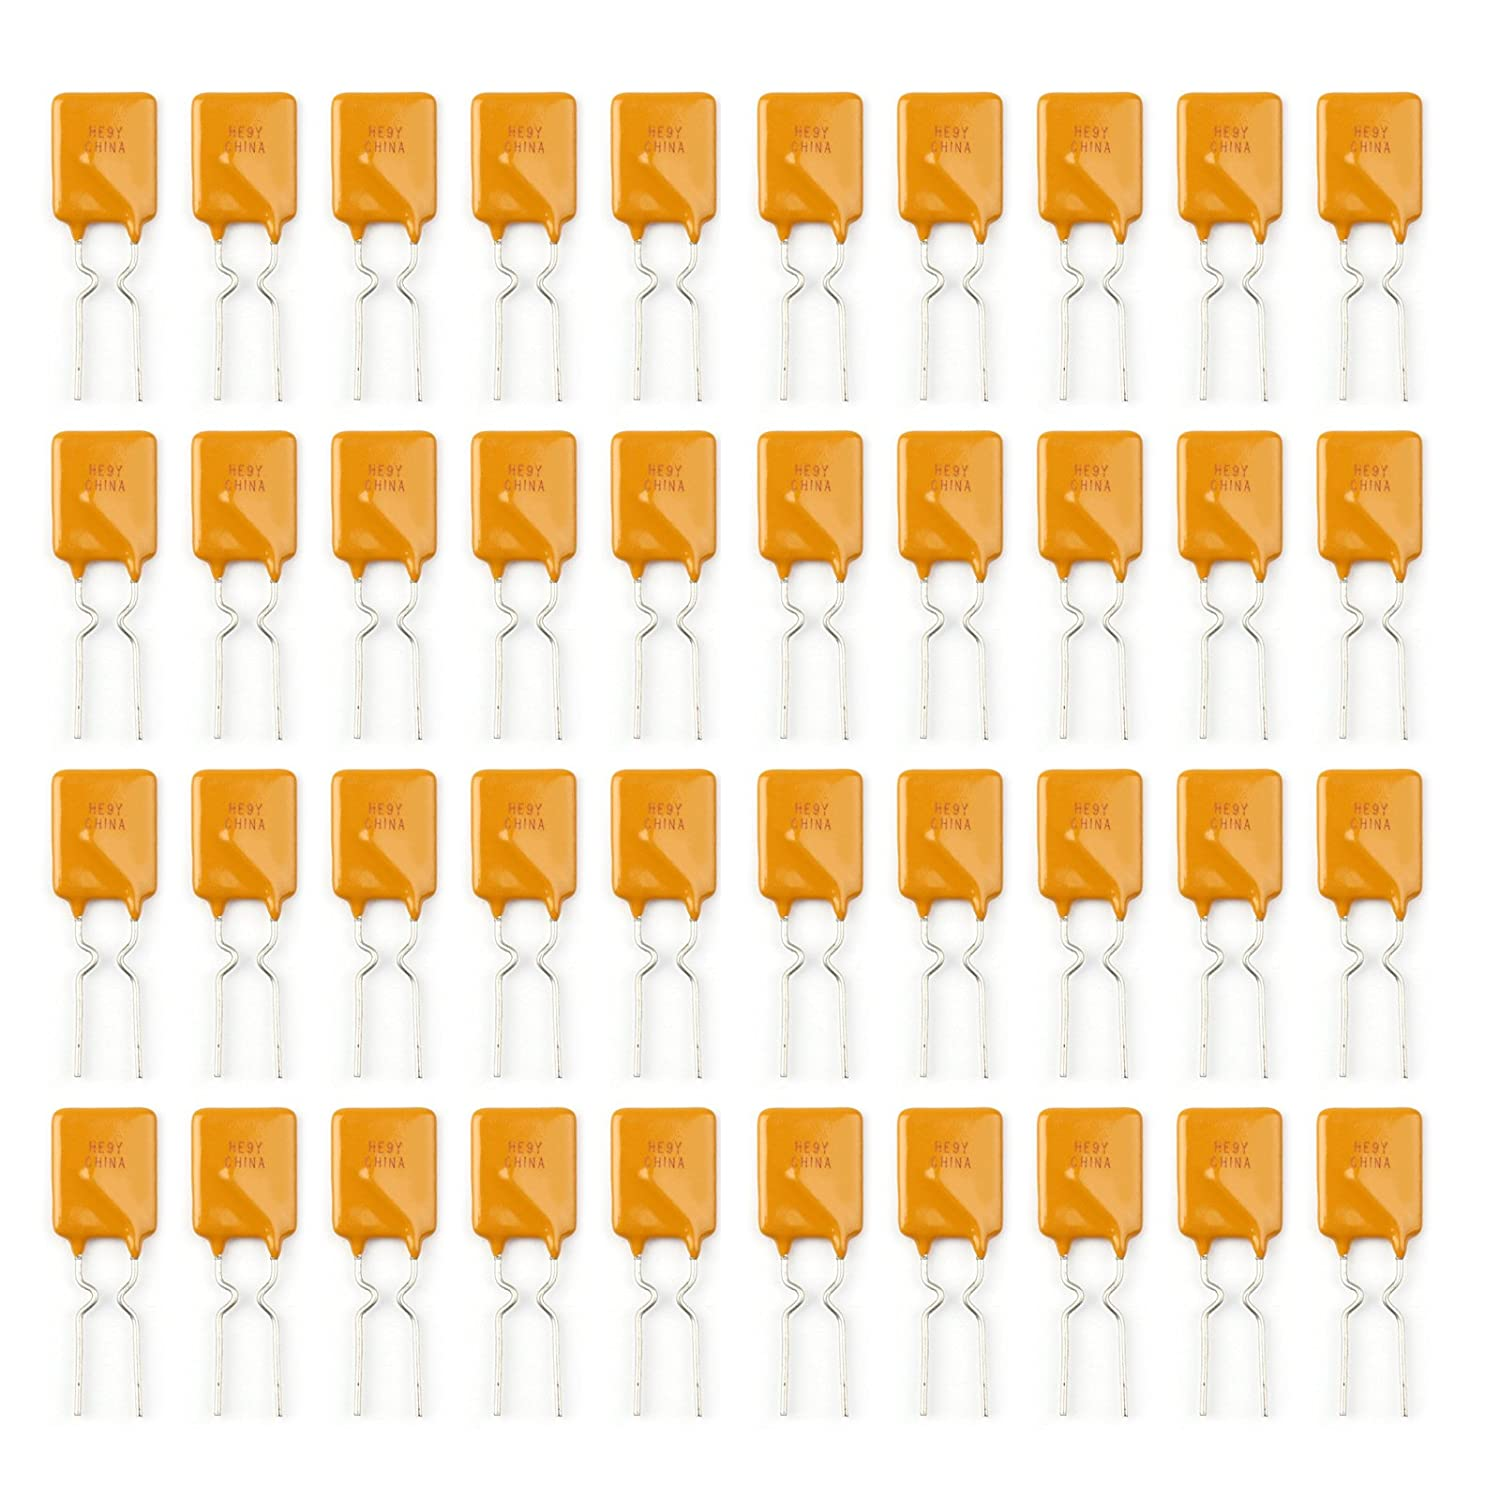 Areyourshop 40Pcs PTC Resettable Fuses Thermistor Polymer Self-Recovery Fuses 30V//1.85A